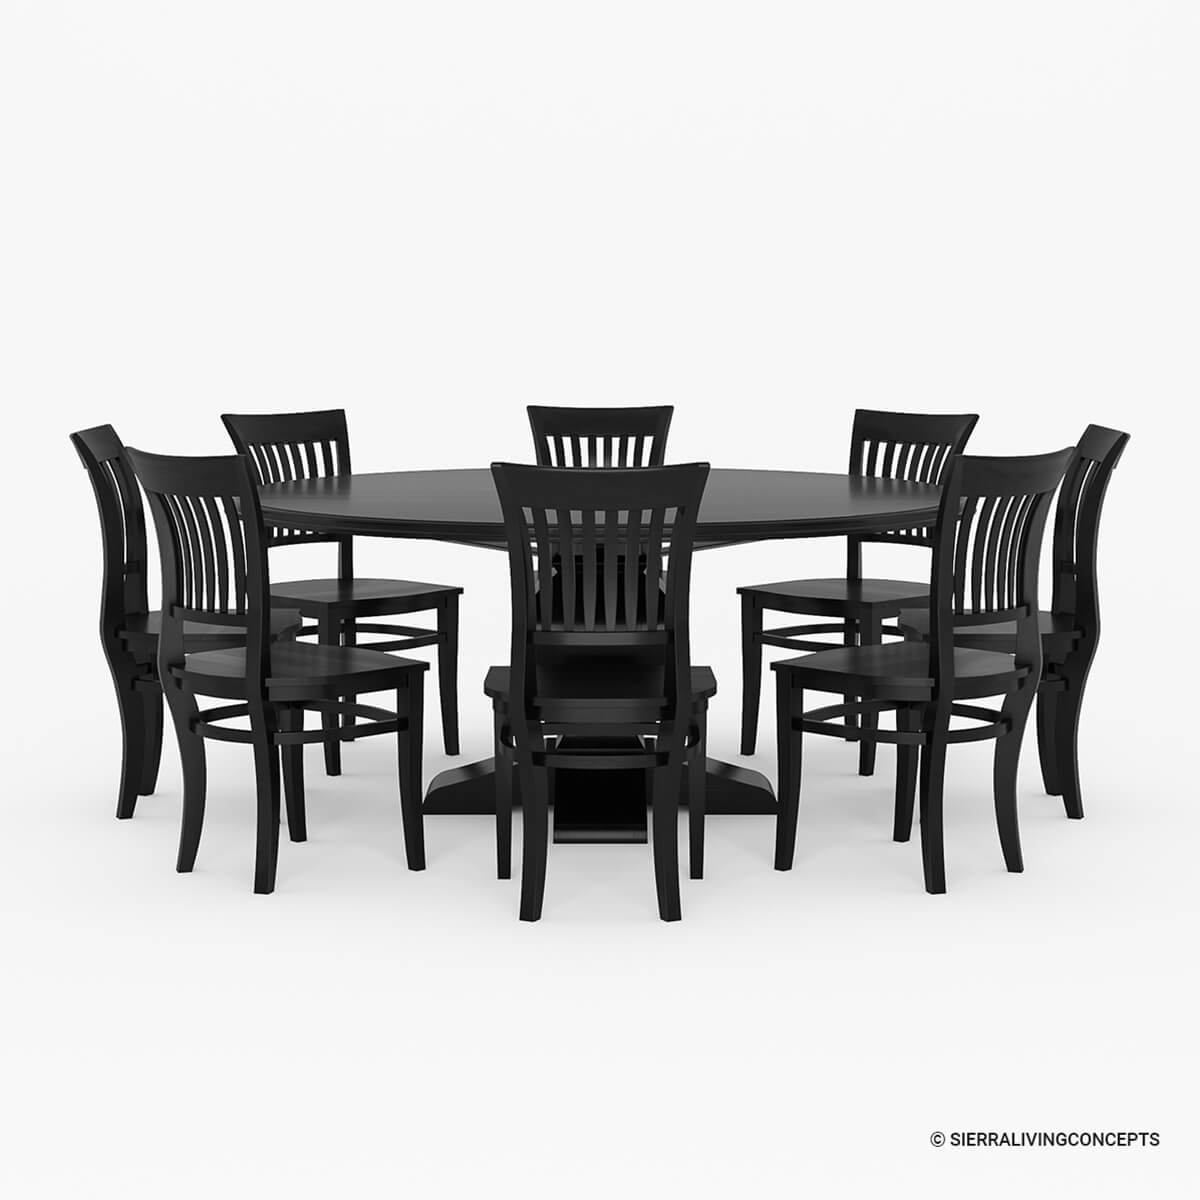 classics rustic solid wood large round dining table chair set